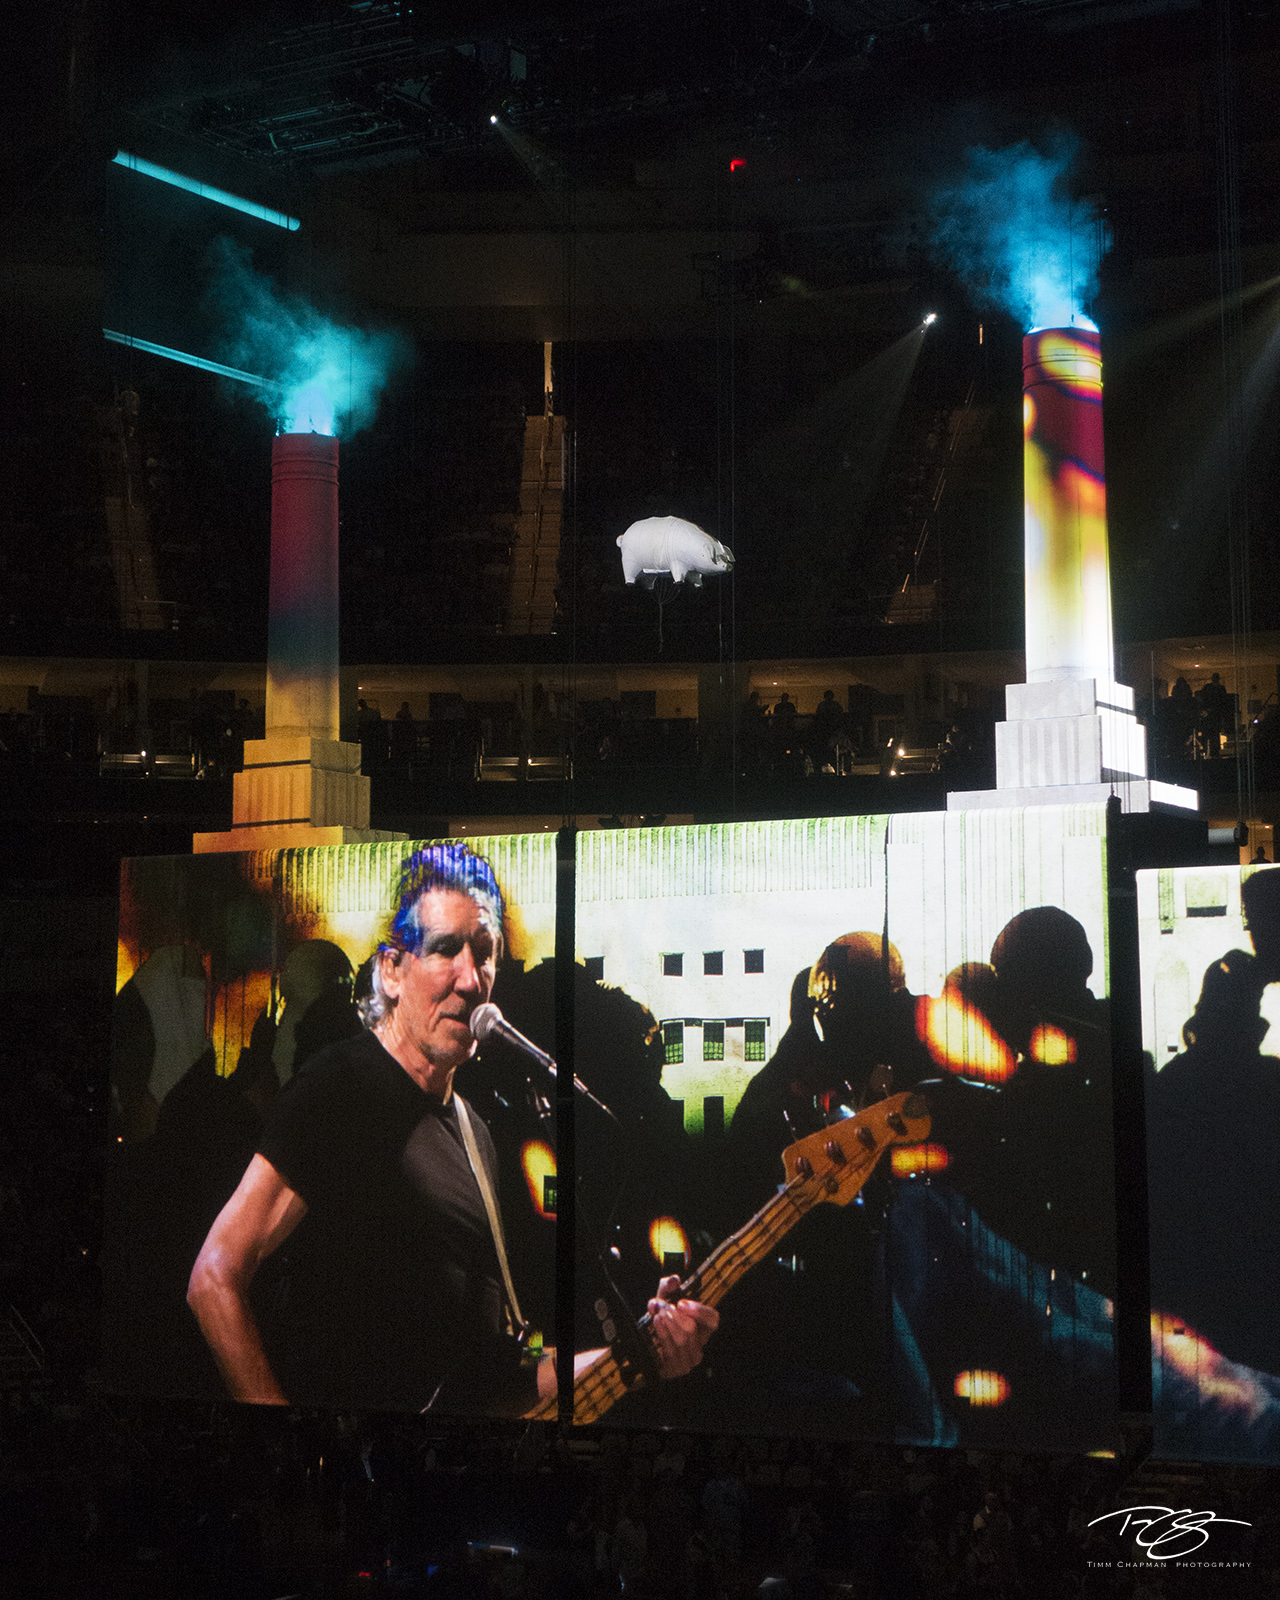 roger waters, pink floyd, in concert, performing, us + them, us and them, animals, battersea power station, pigs, pig, photo